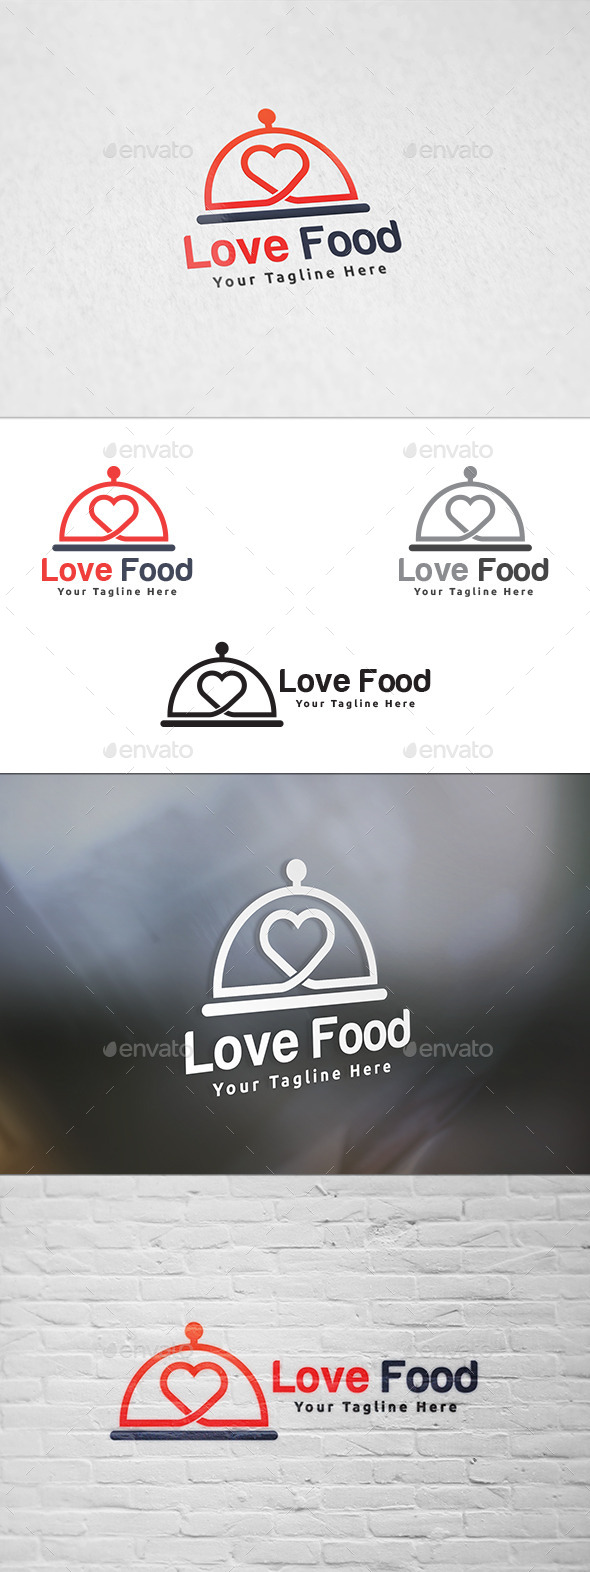 Love Food - Logo Template